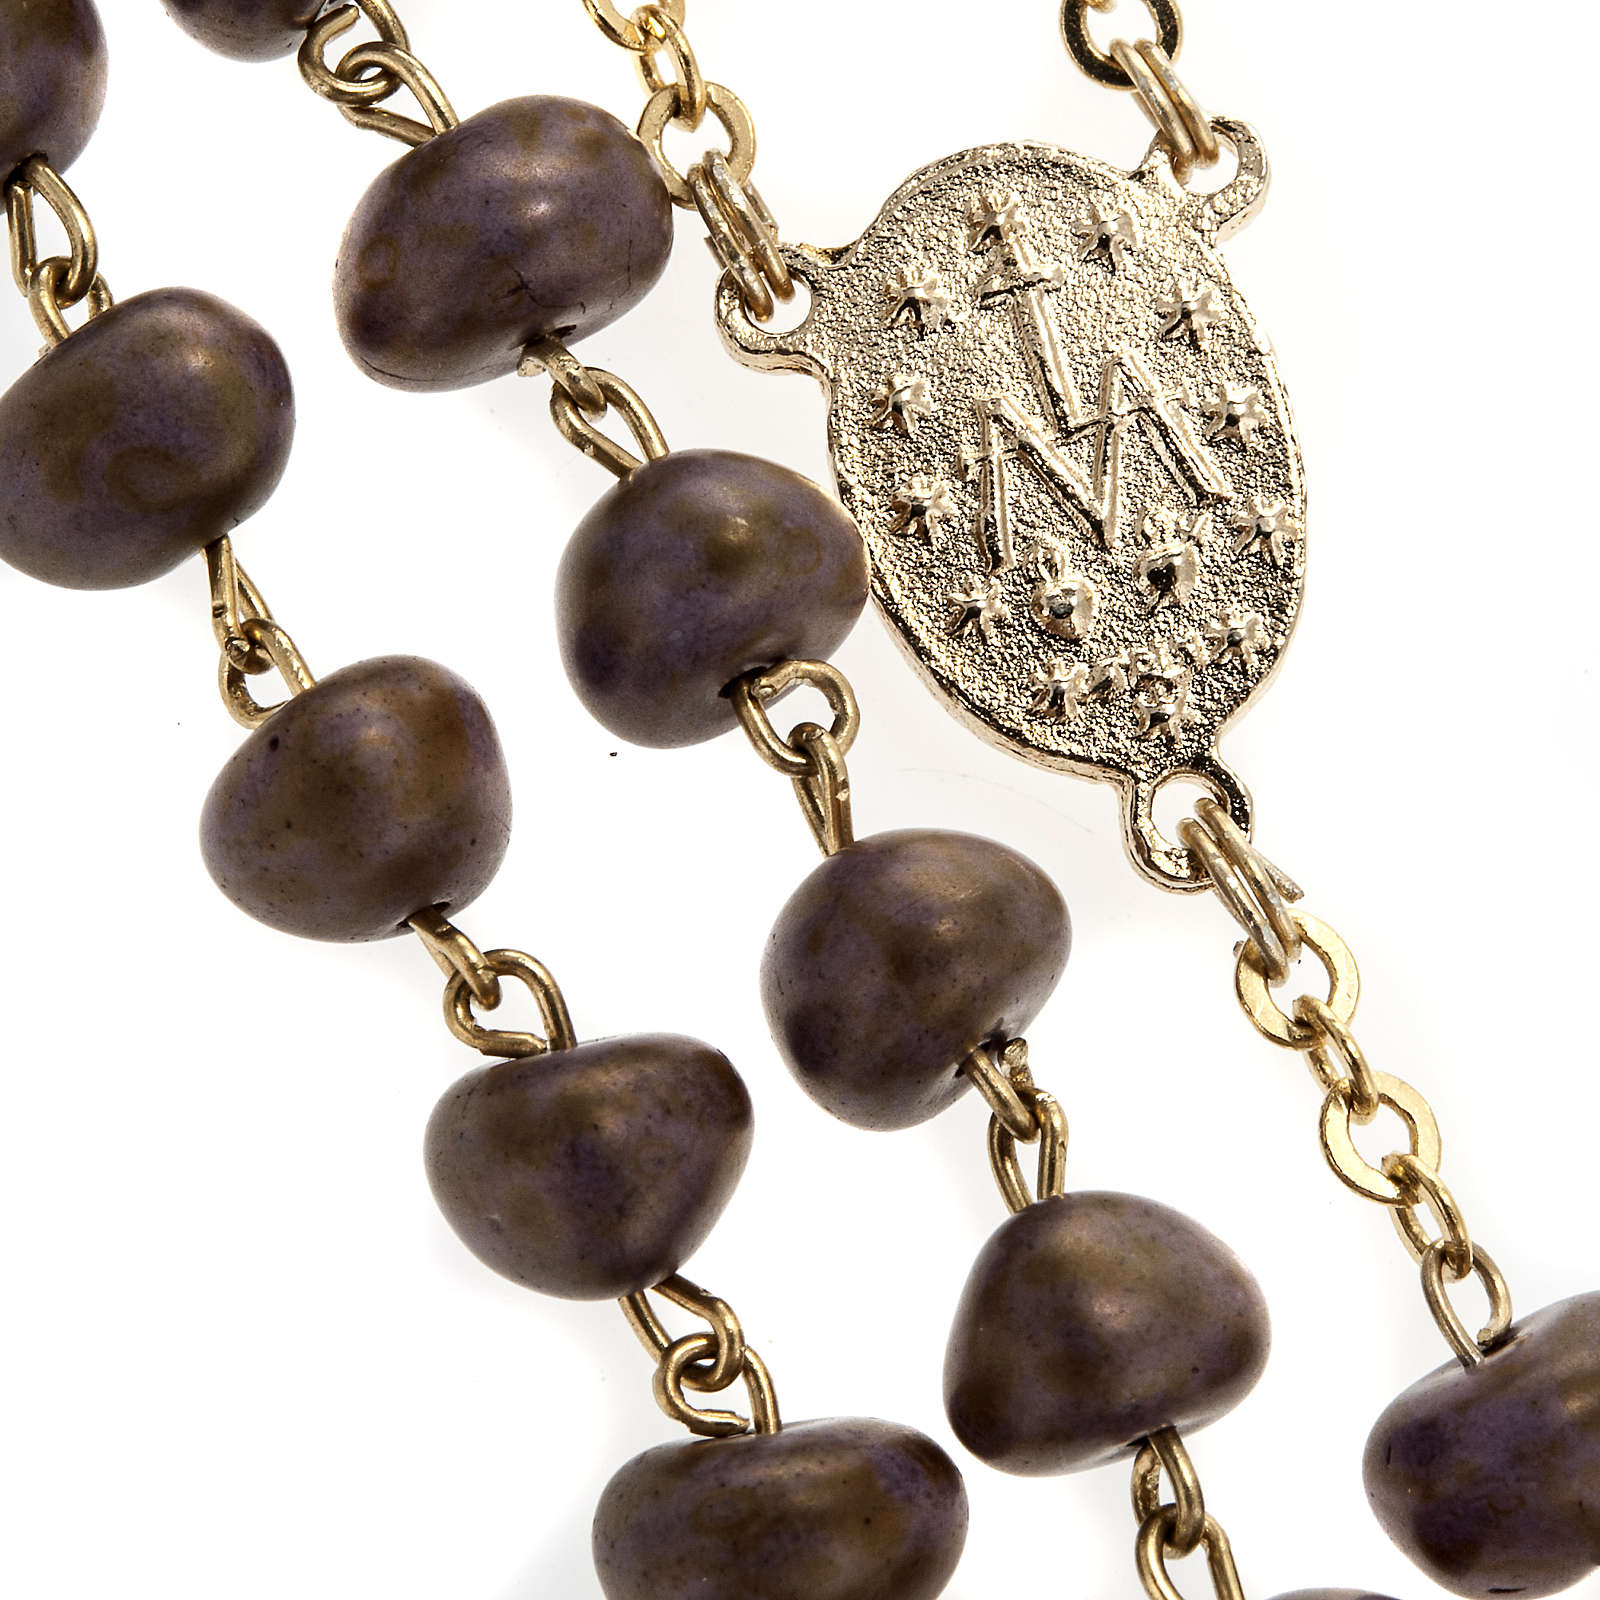 Stone-like rosary beads, golden metal, 9mm 4